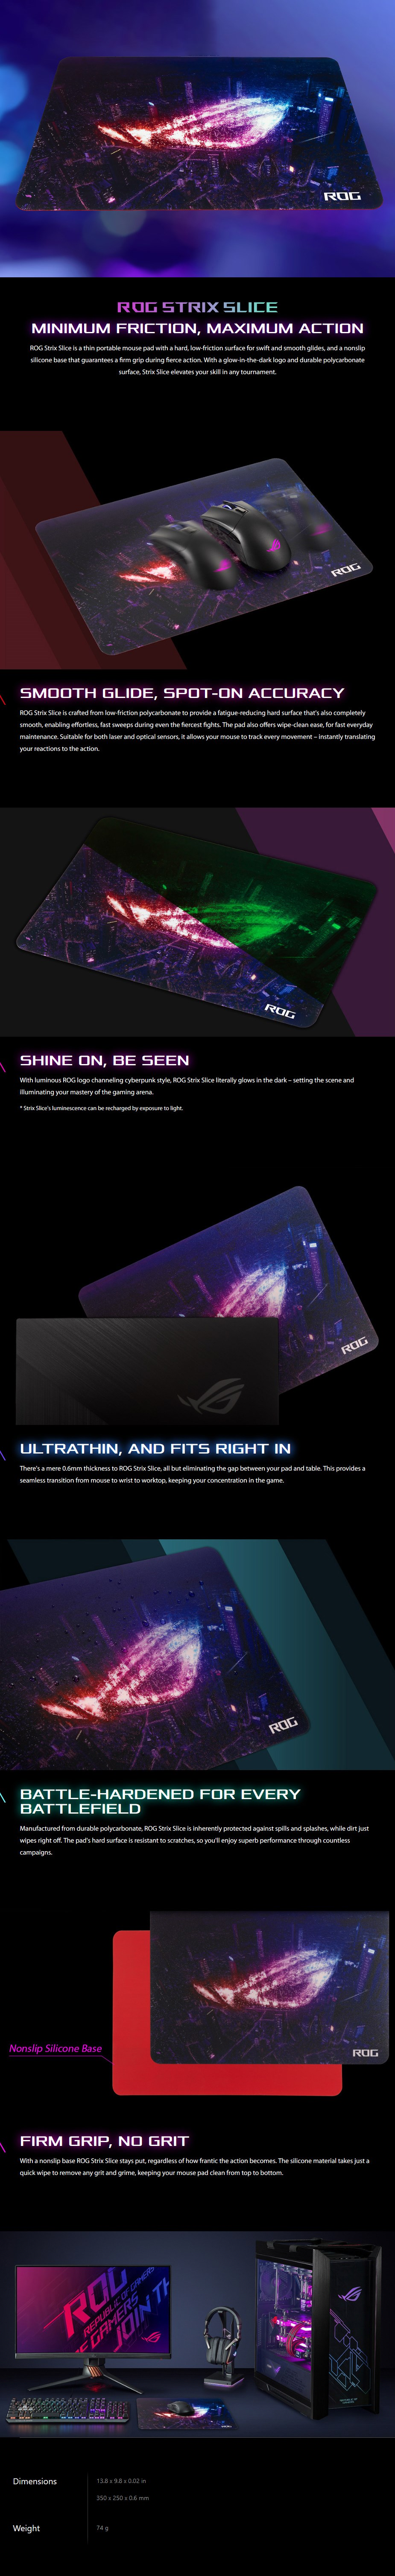 asus-rog-strix-slice-cloth-gaming-mouse-pad-ac31980-1.jpg